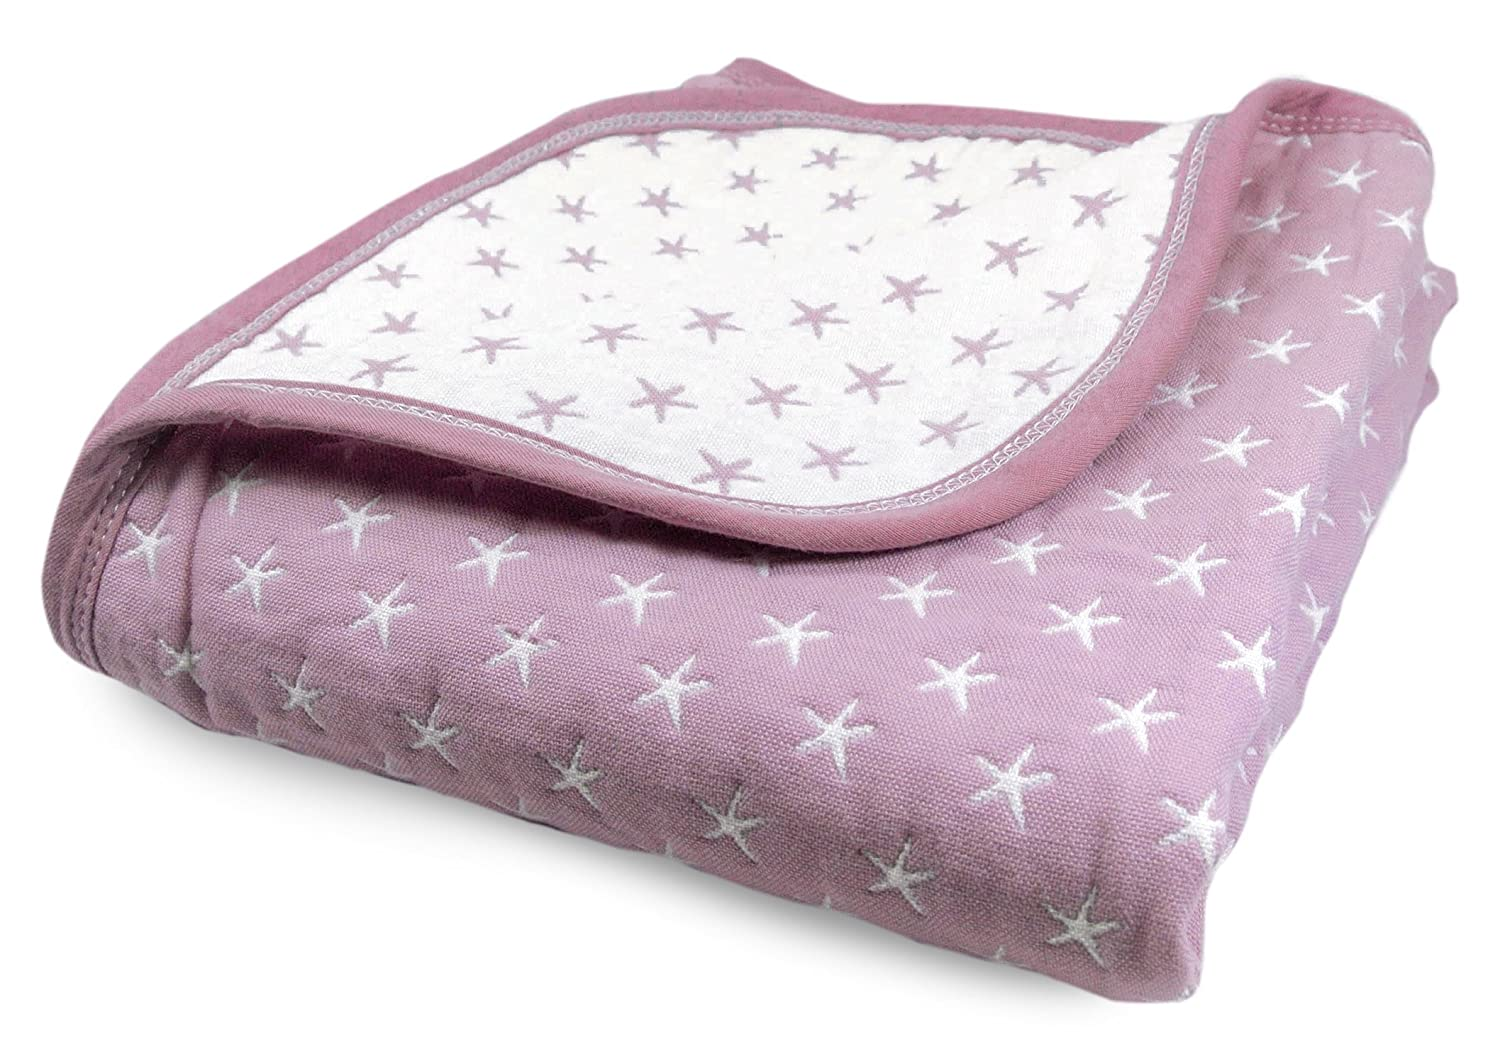 Cute New York Sweet Dream Blanket//Purple Lightweight All Weather Cotton Jacquard Blanket for Babies and Toddlers